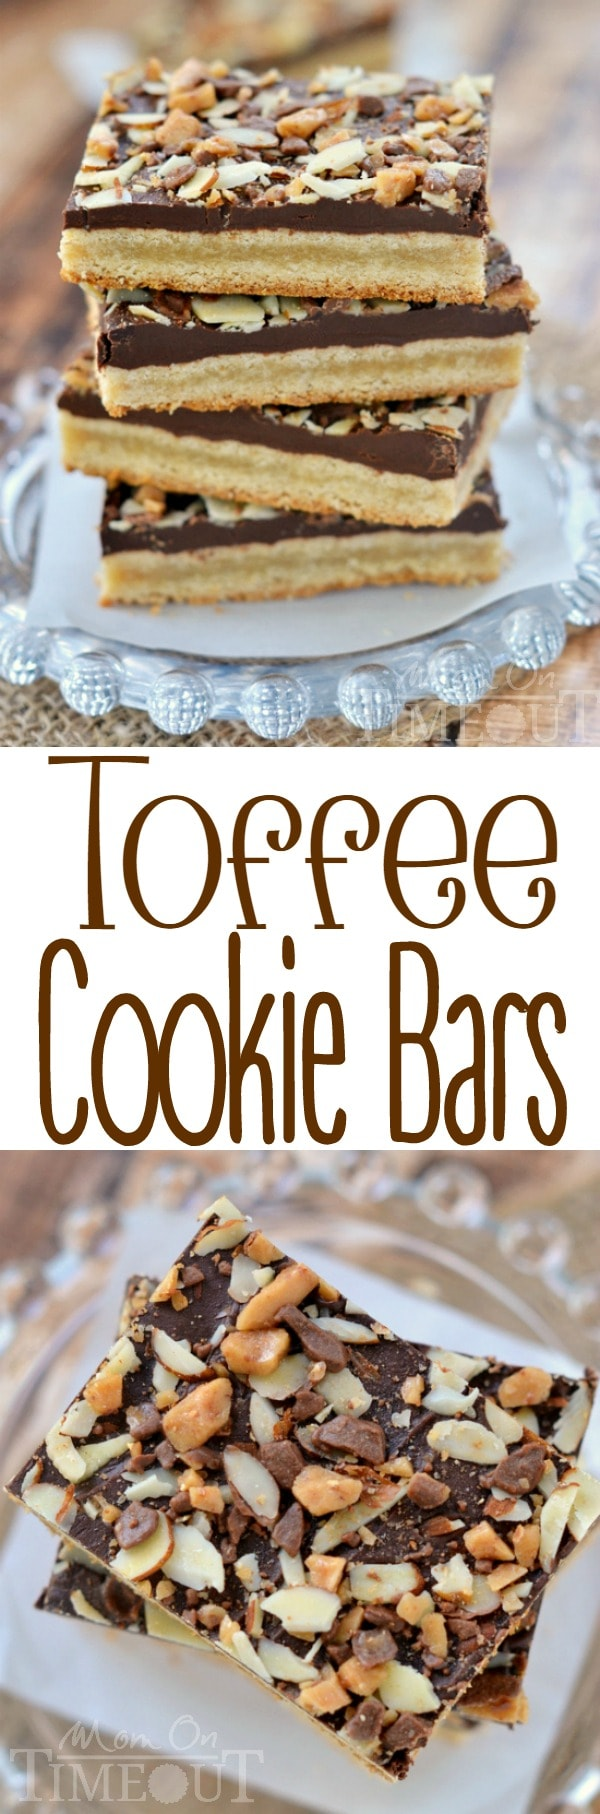 You're going to go crazy for these Toffee Cookie Bars! Simple cookie bars topped with a decadent chocolate layer, almonds and toffee bits - just delicious! | MomOnTimeout.com